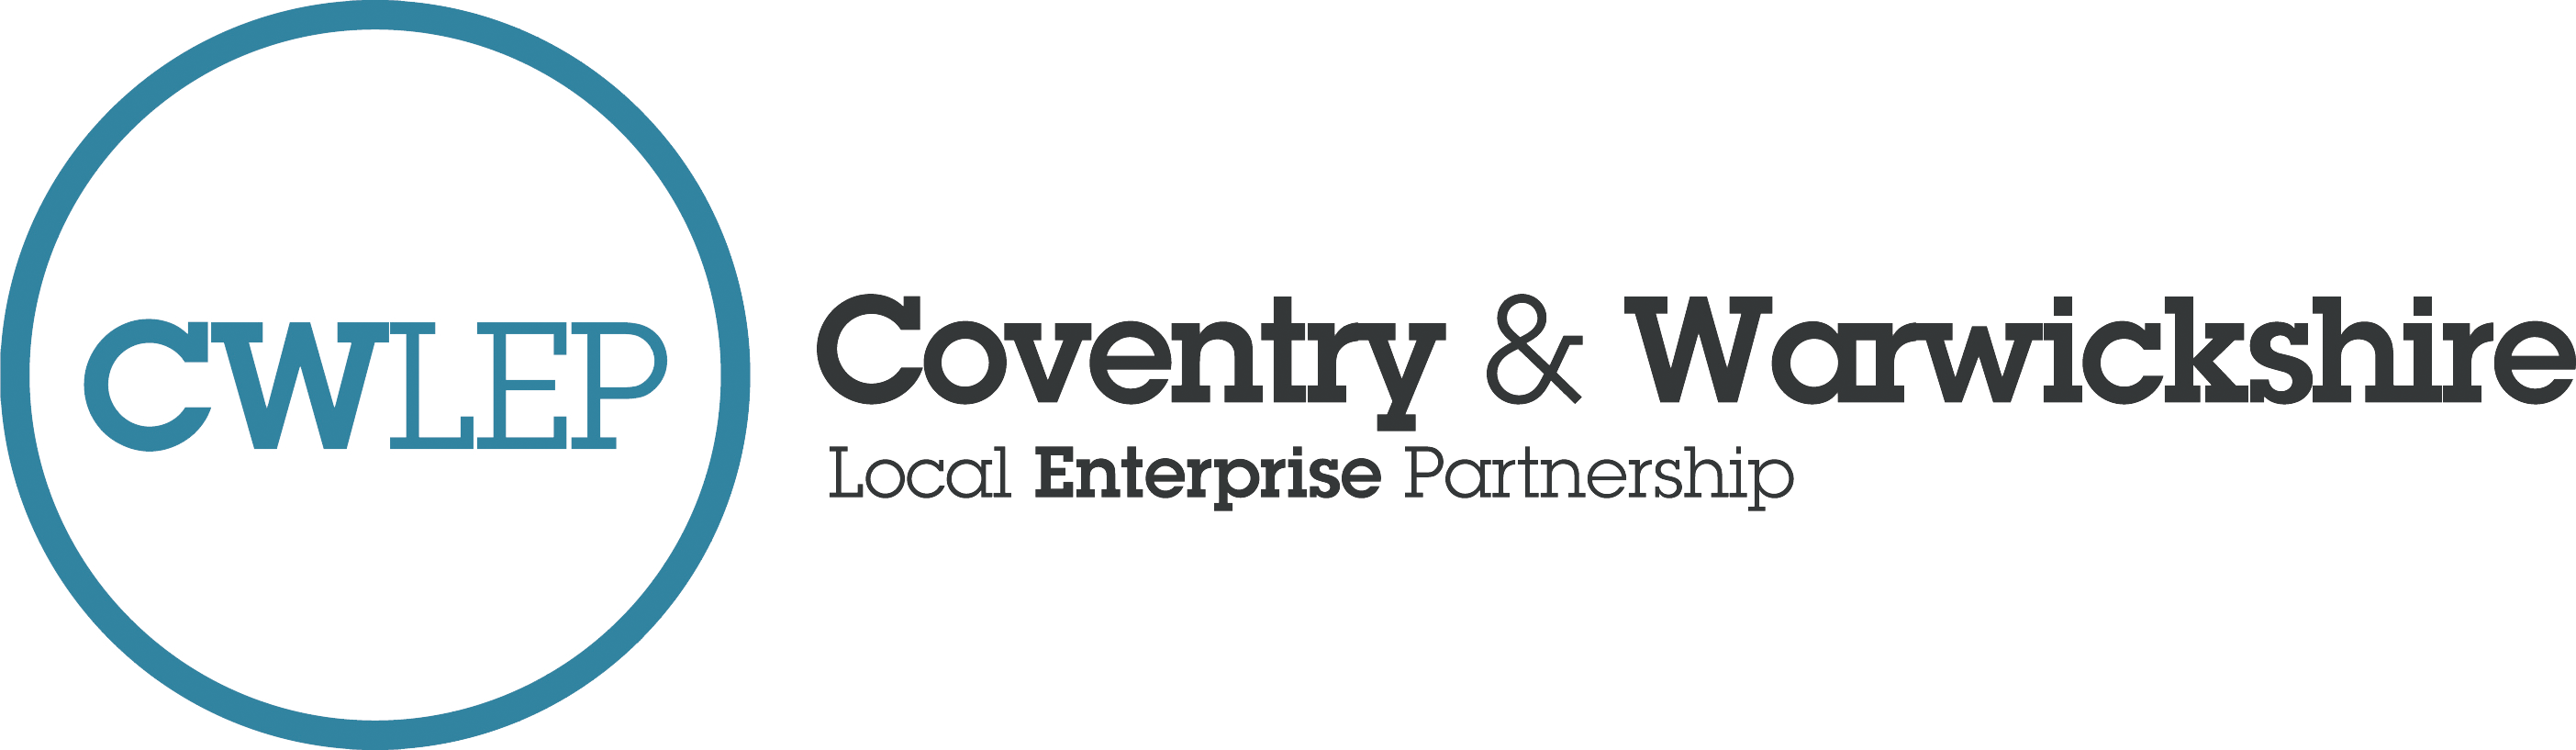 Coventry & Warwickshire Local Enterprise Partnership